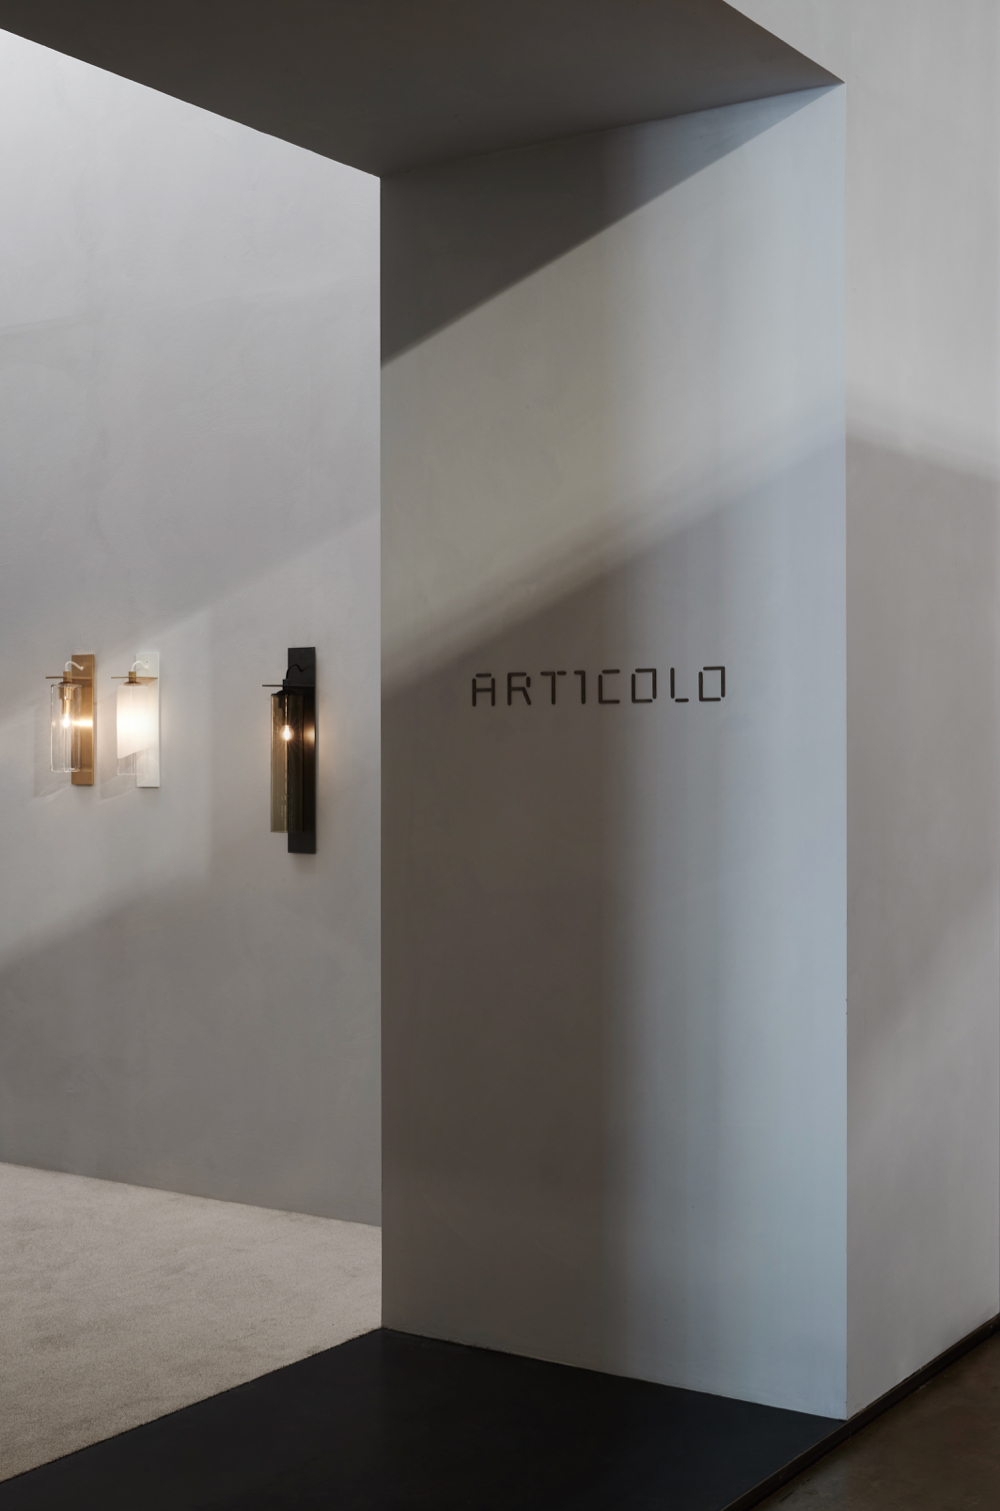 Entrance to the Articolo stand at Euroluce 2019. Photograph: Willem-Dirk du Toit.